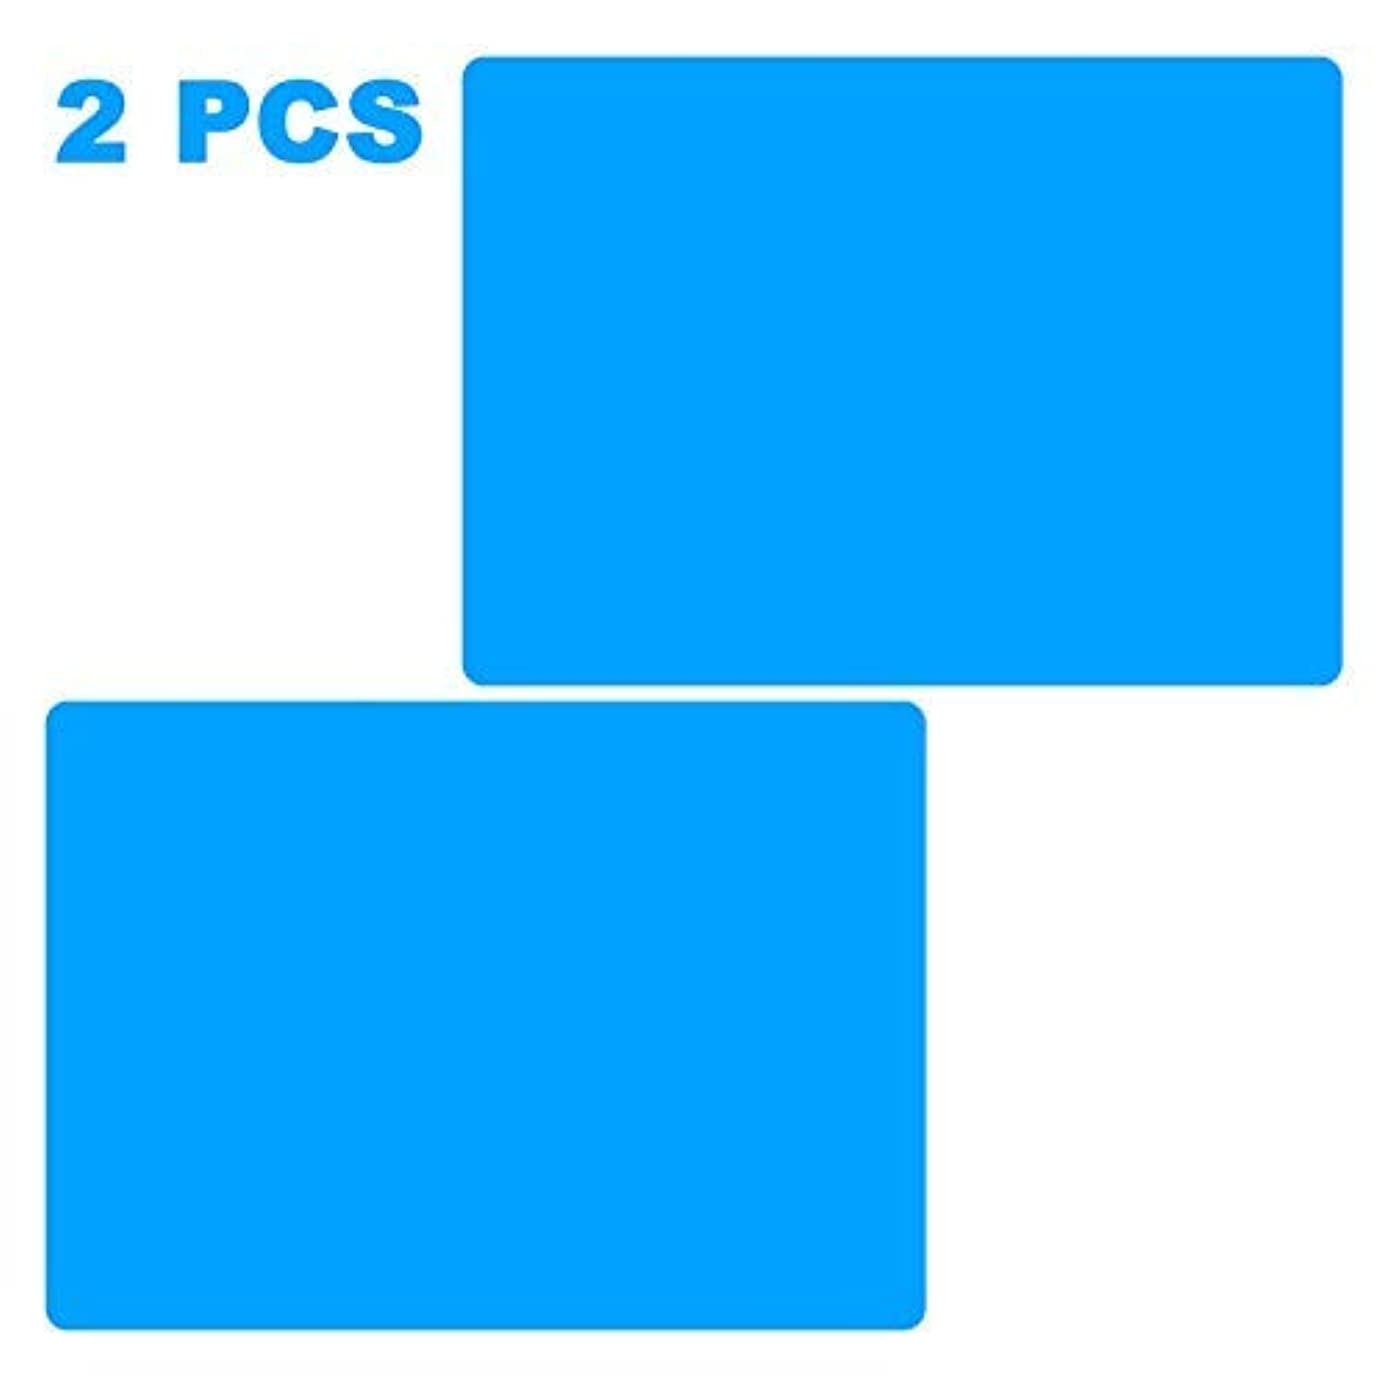 AQUEENLY 2 PCS A4 Silicone Sheet for Crafts Jewelry Casting Molds Mat, Food Grade, Blue